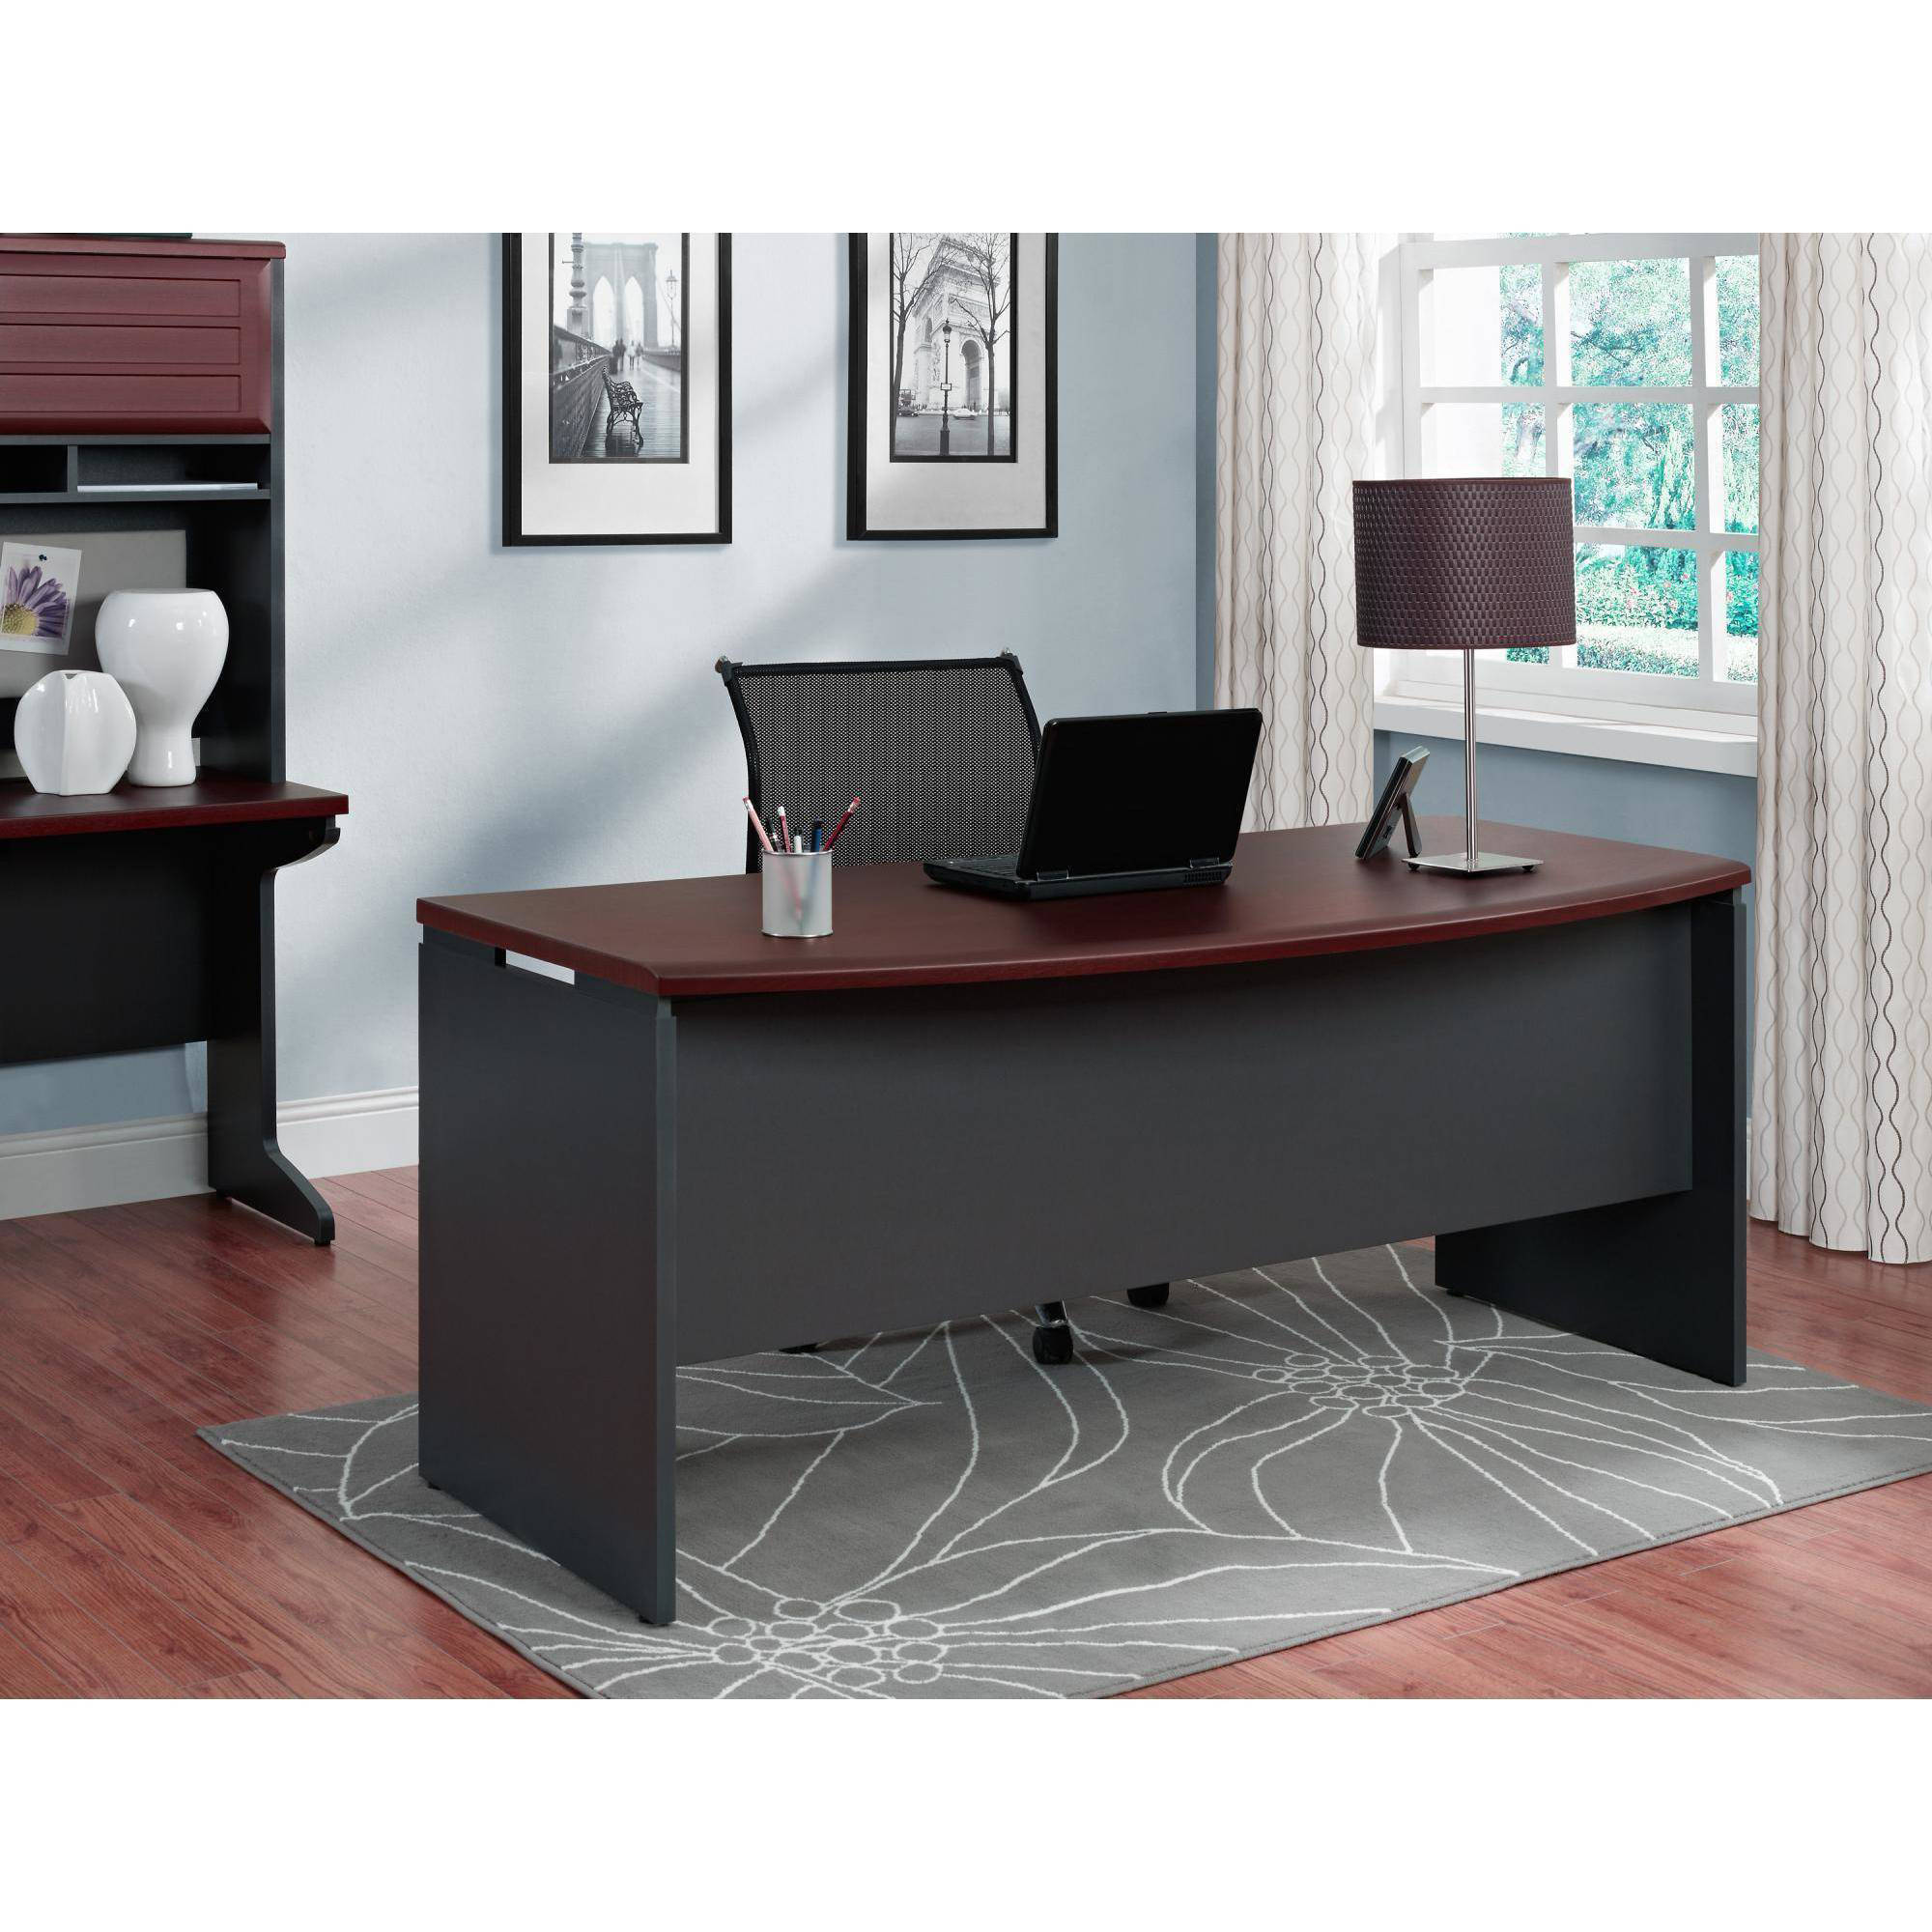 stock photo picture 1 of 6 - Modern Home Office Desk